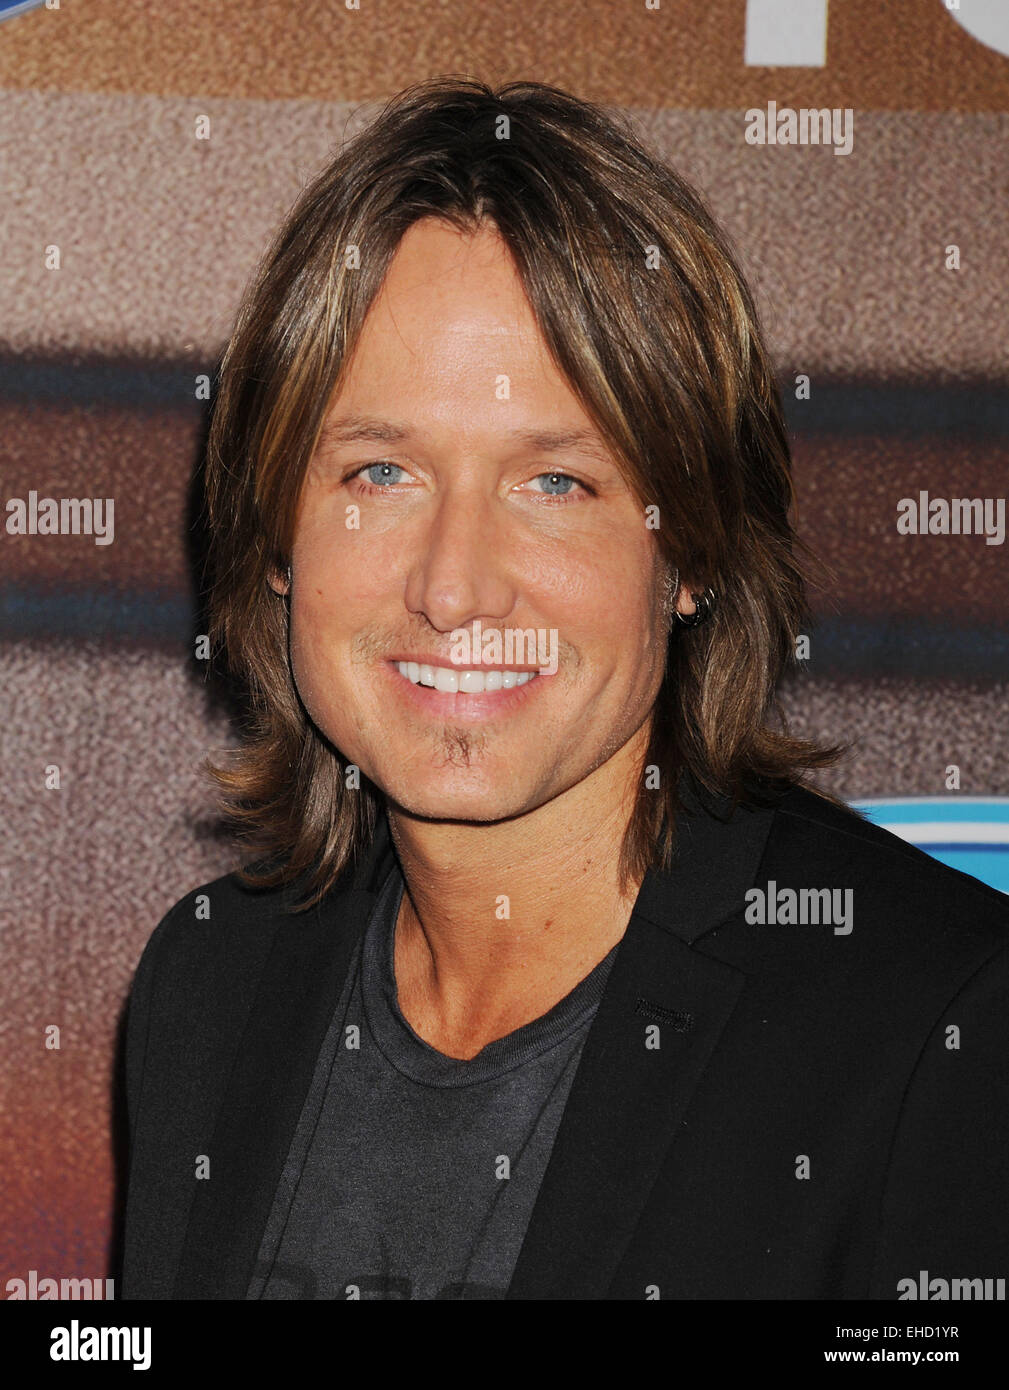 KEITH URBAN New Zealand country musician in March 2015. Photo Jeffrey Mayer - Stock Image